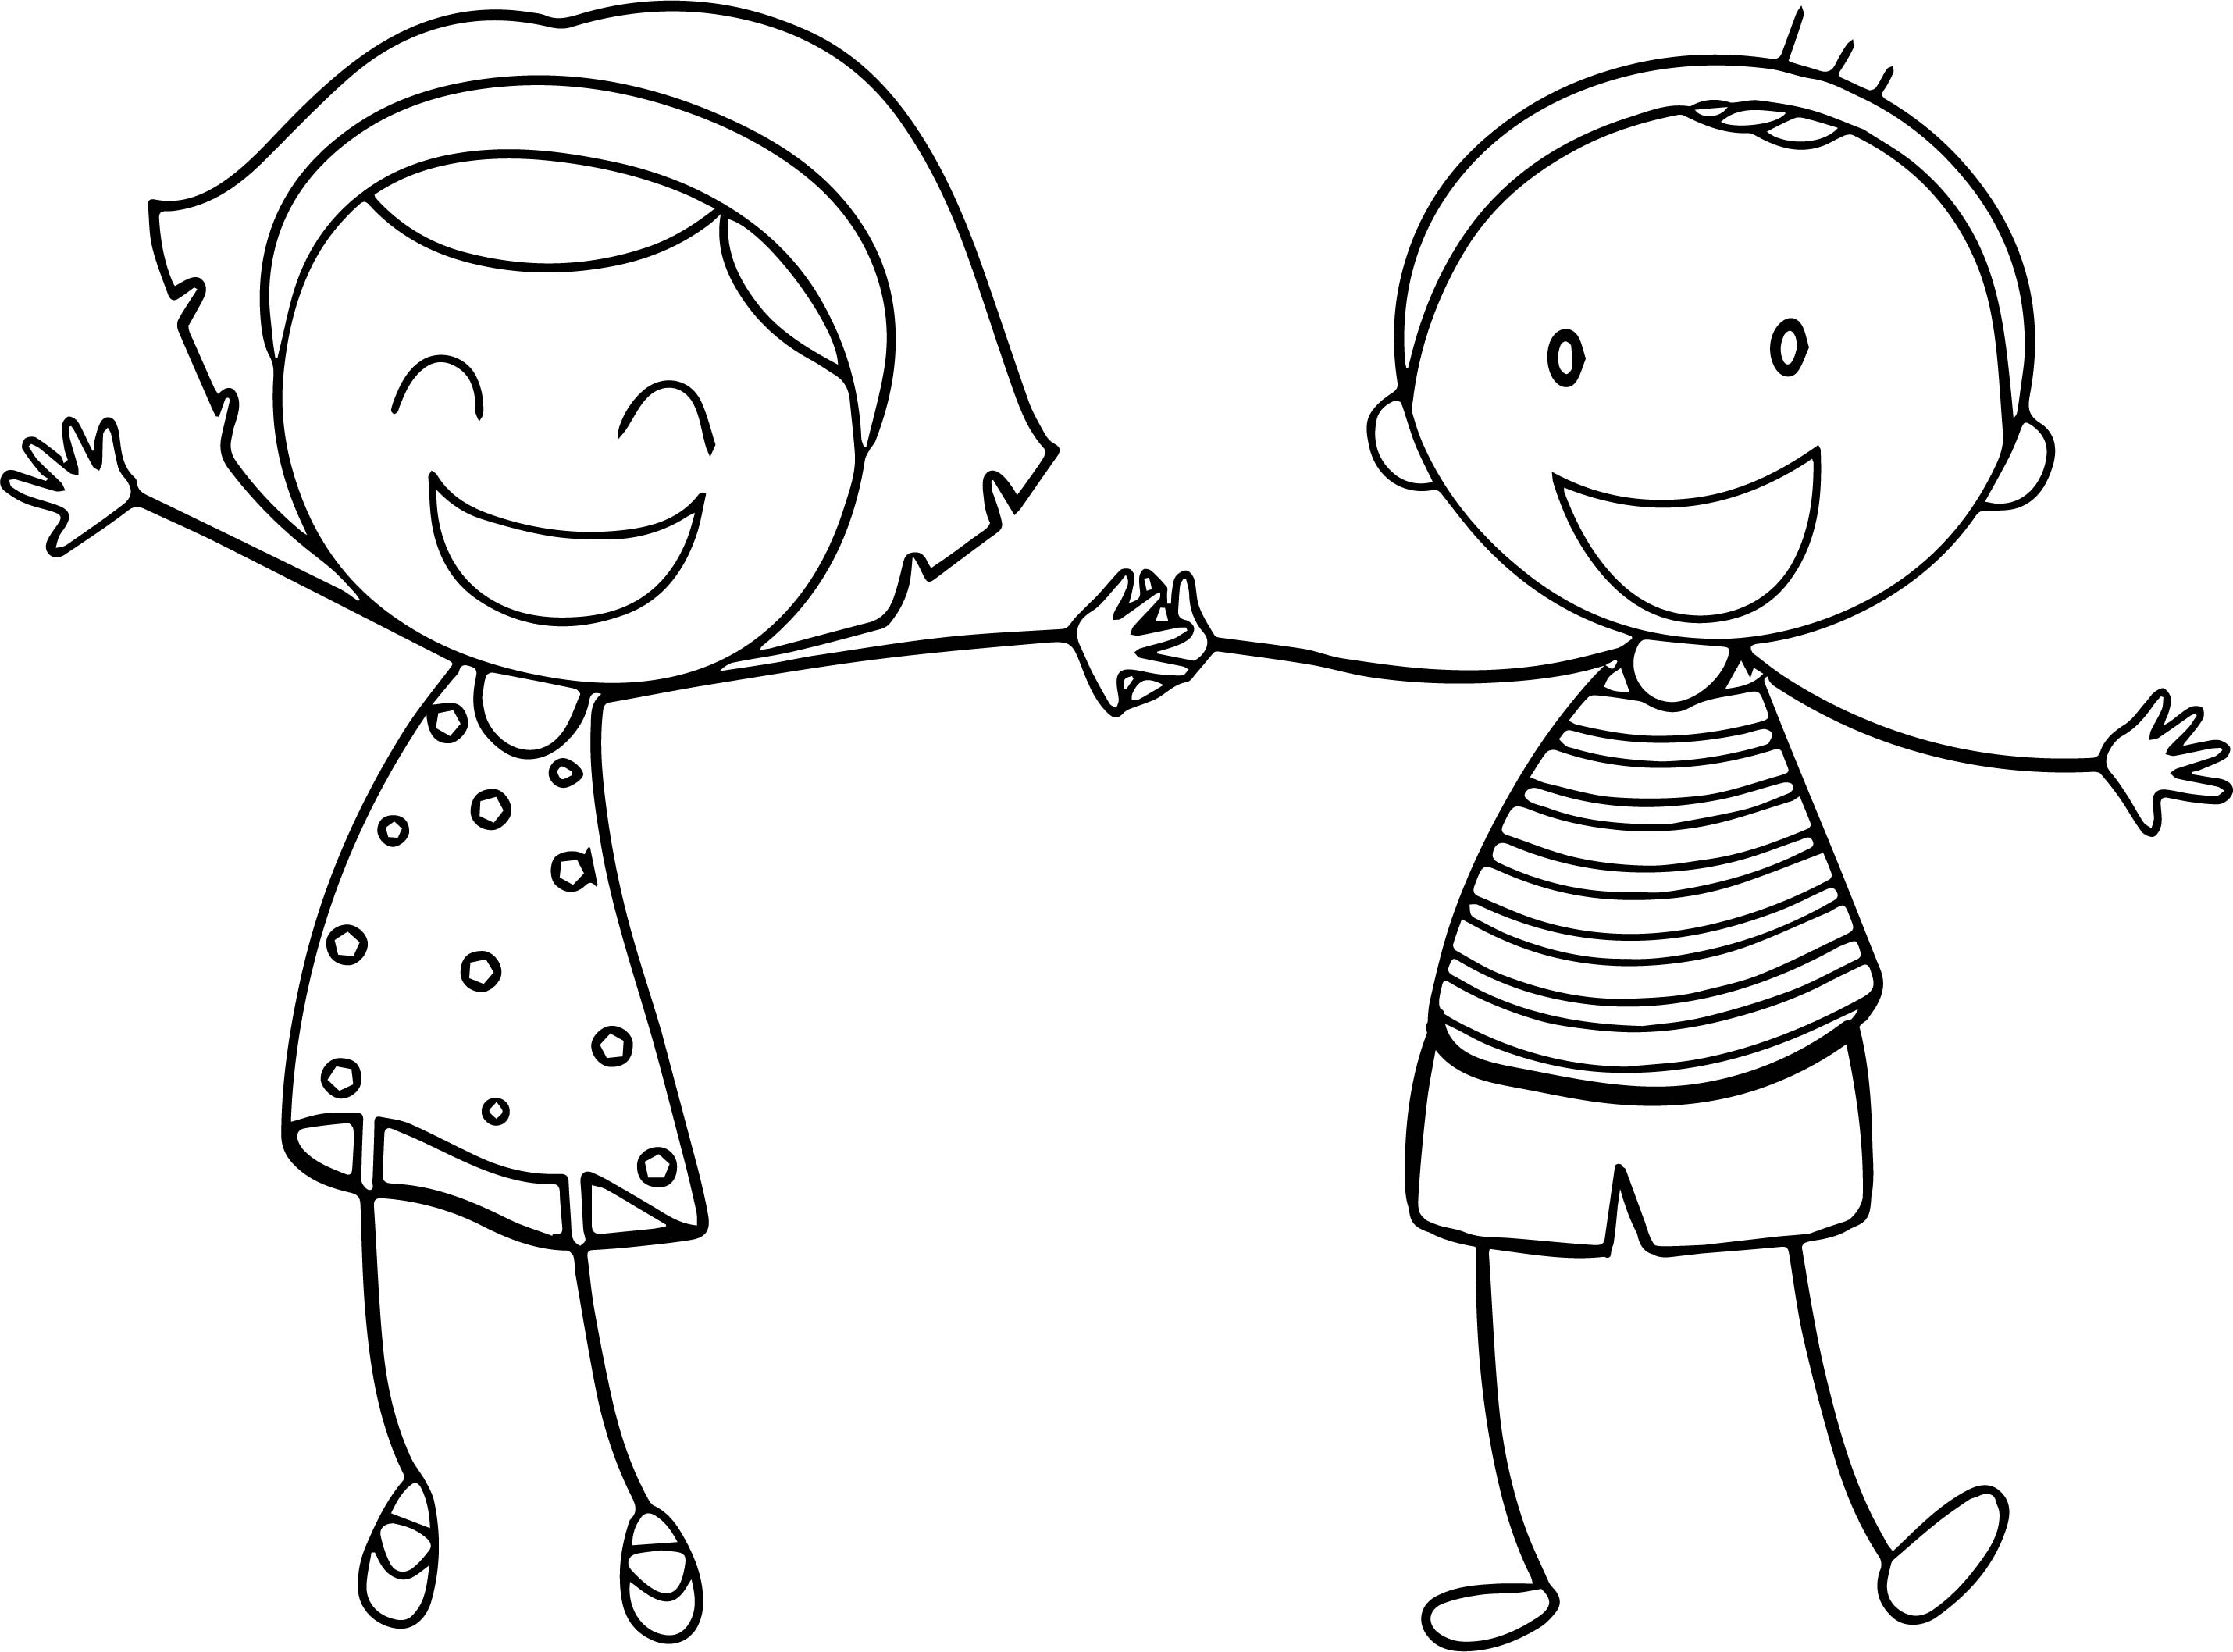 2860x2116 Downloads Boy And Girl Coloring Page 65 On Line Drawings With Boy